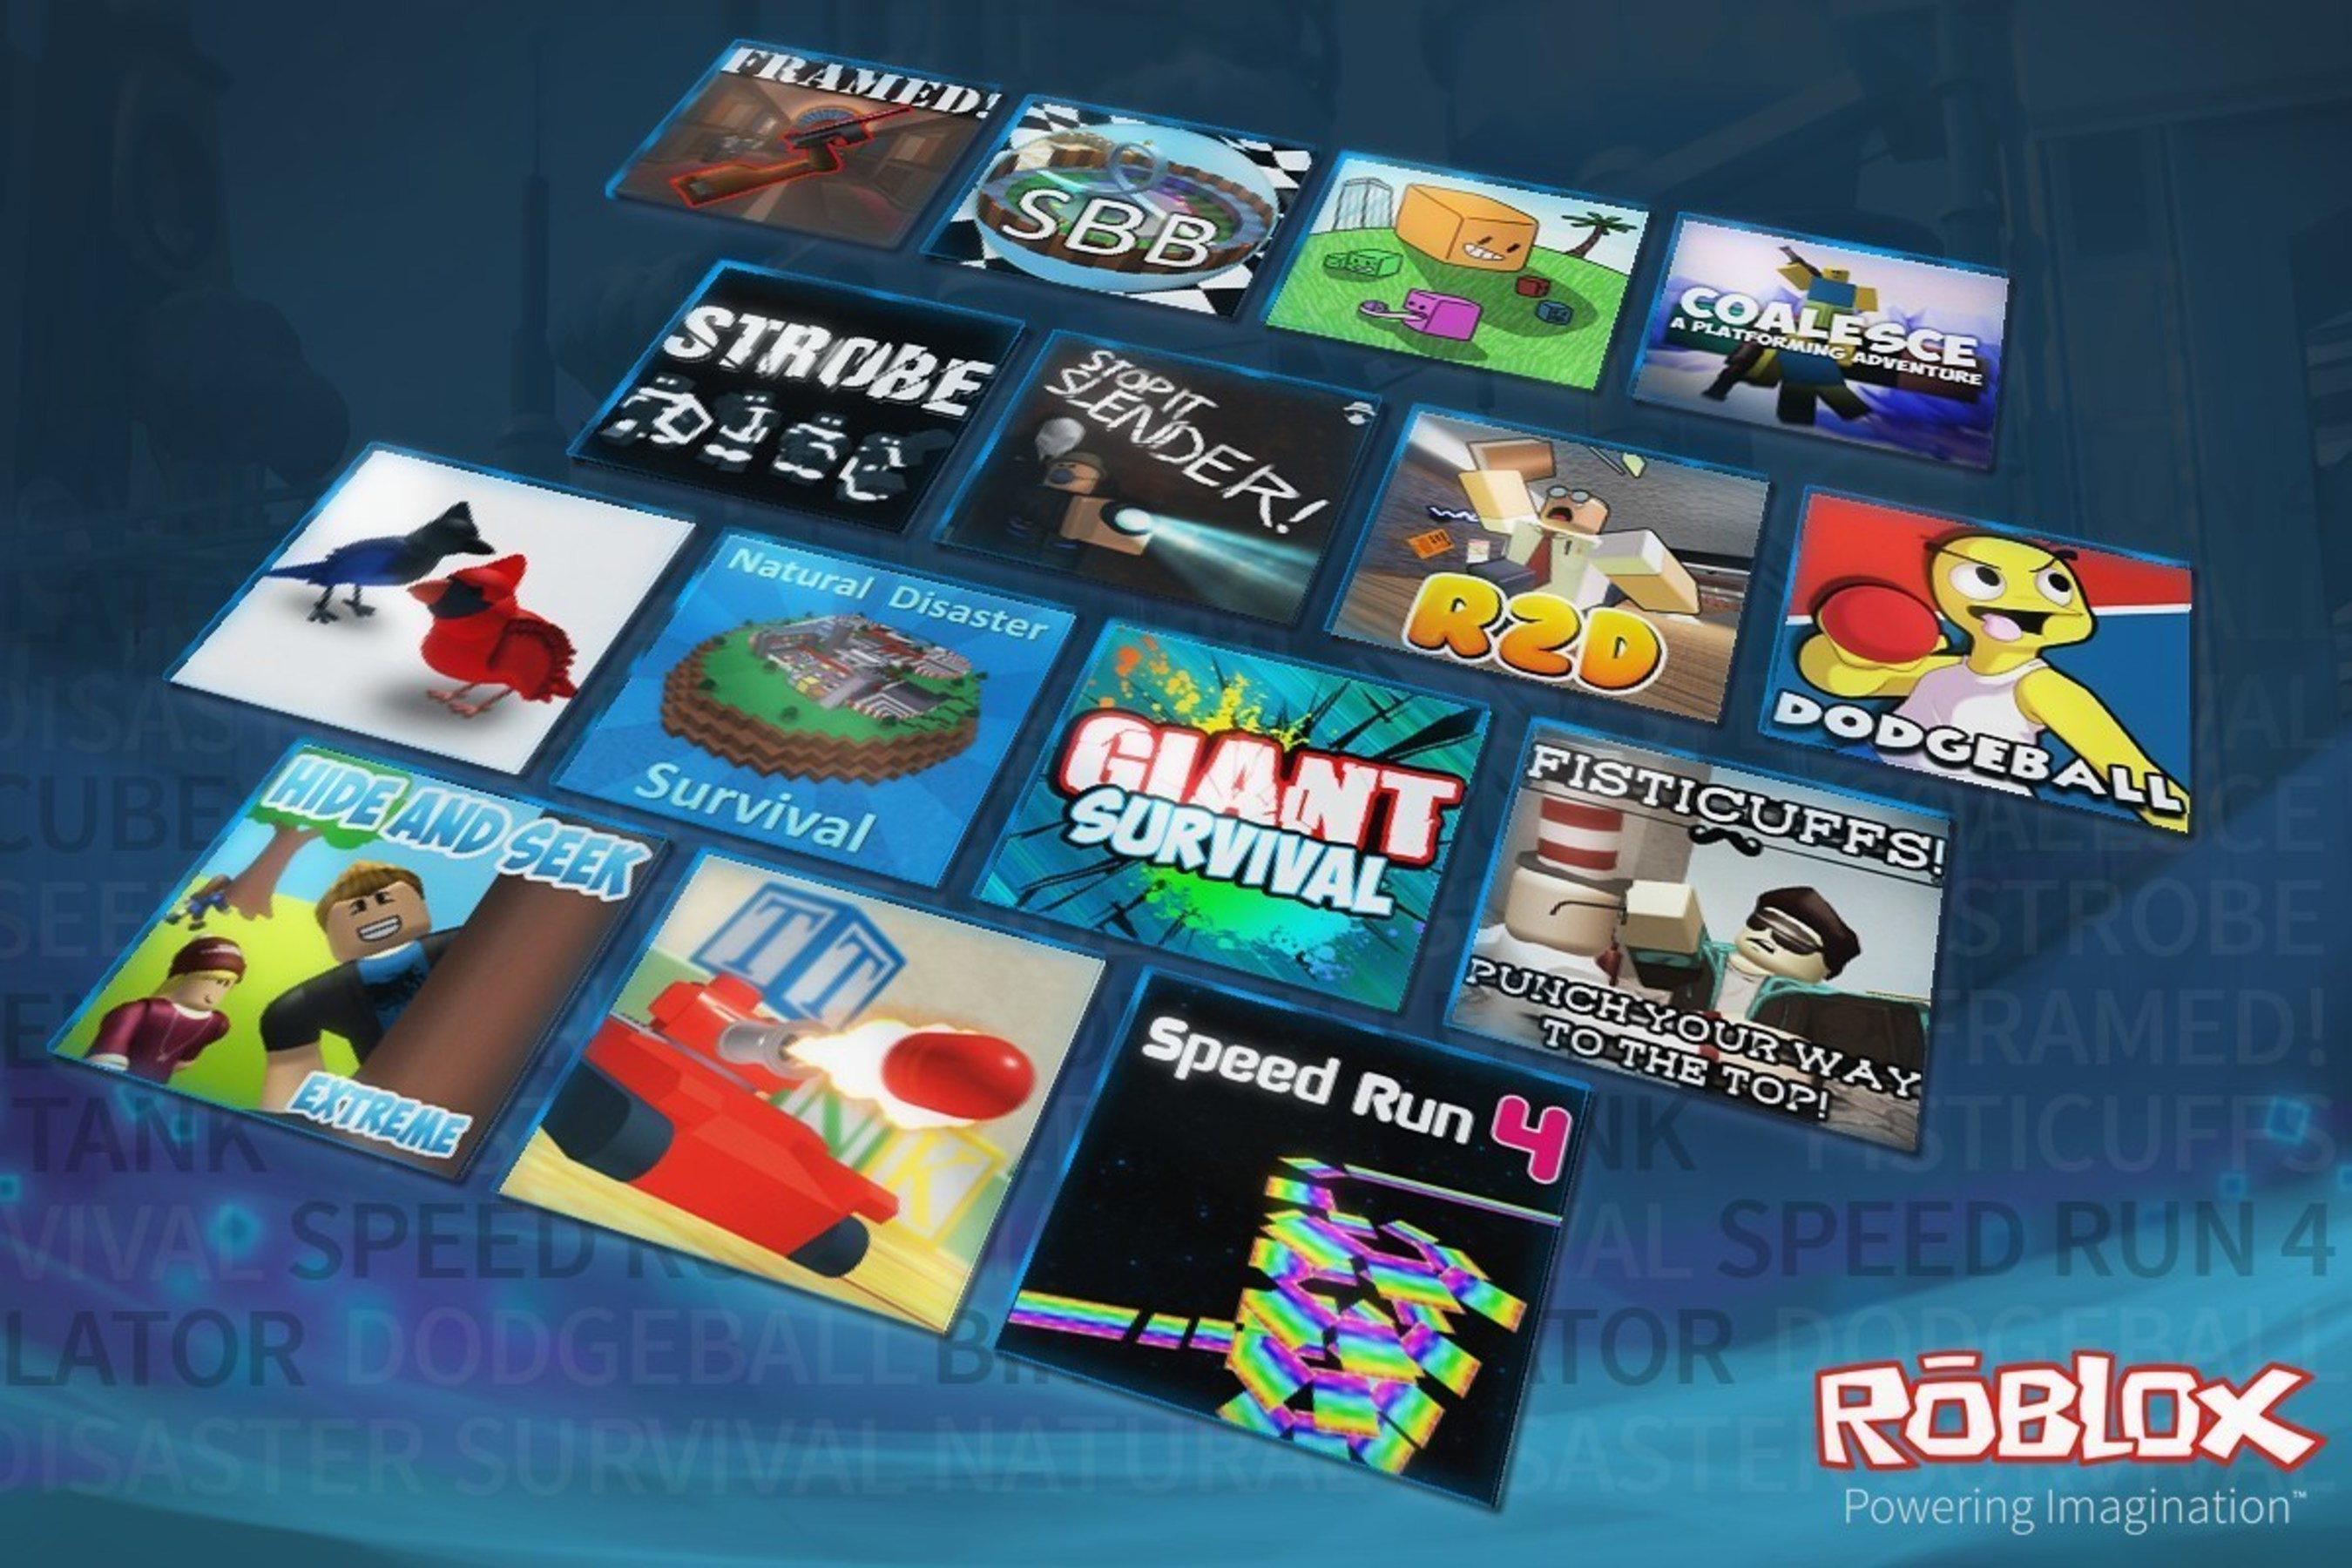 World S Largest User Generated Gaming Destination Now Available On